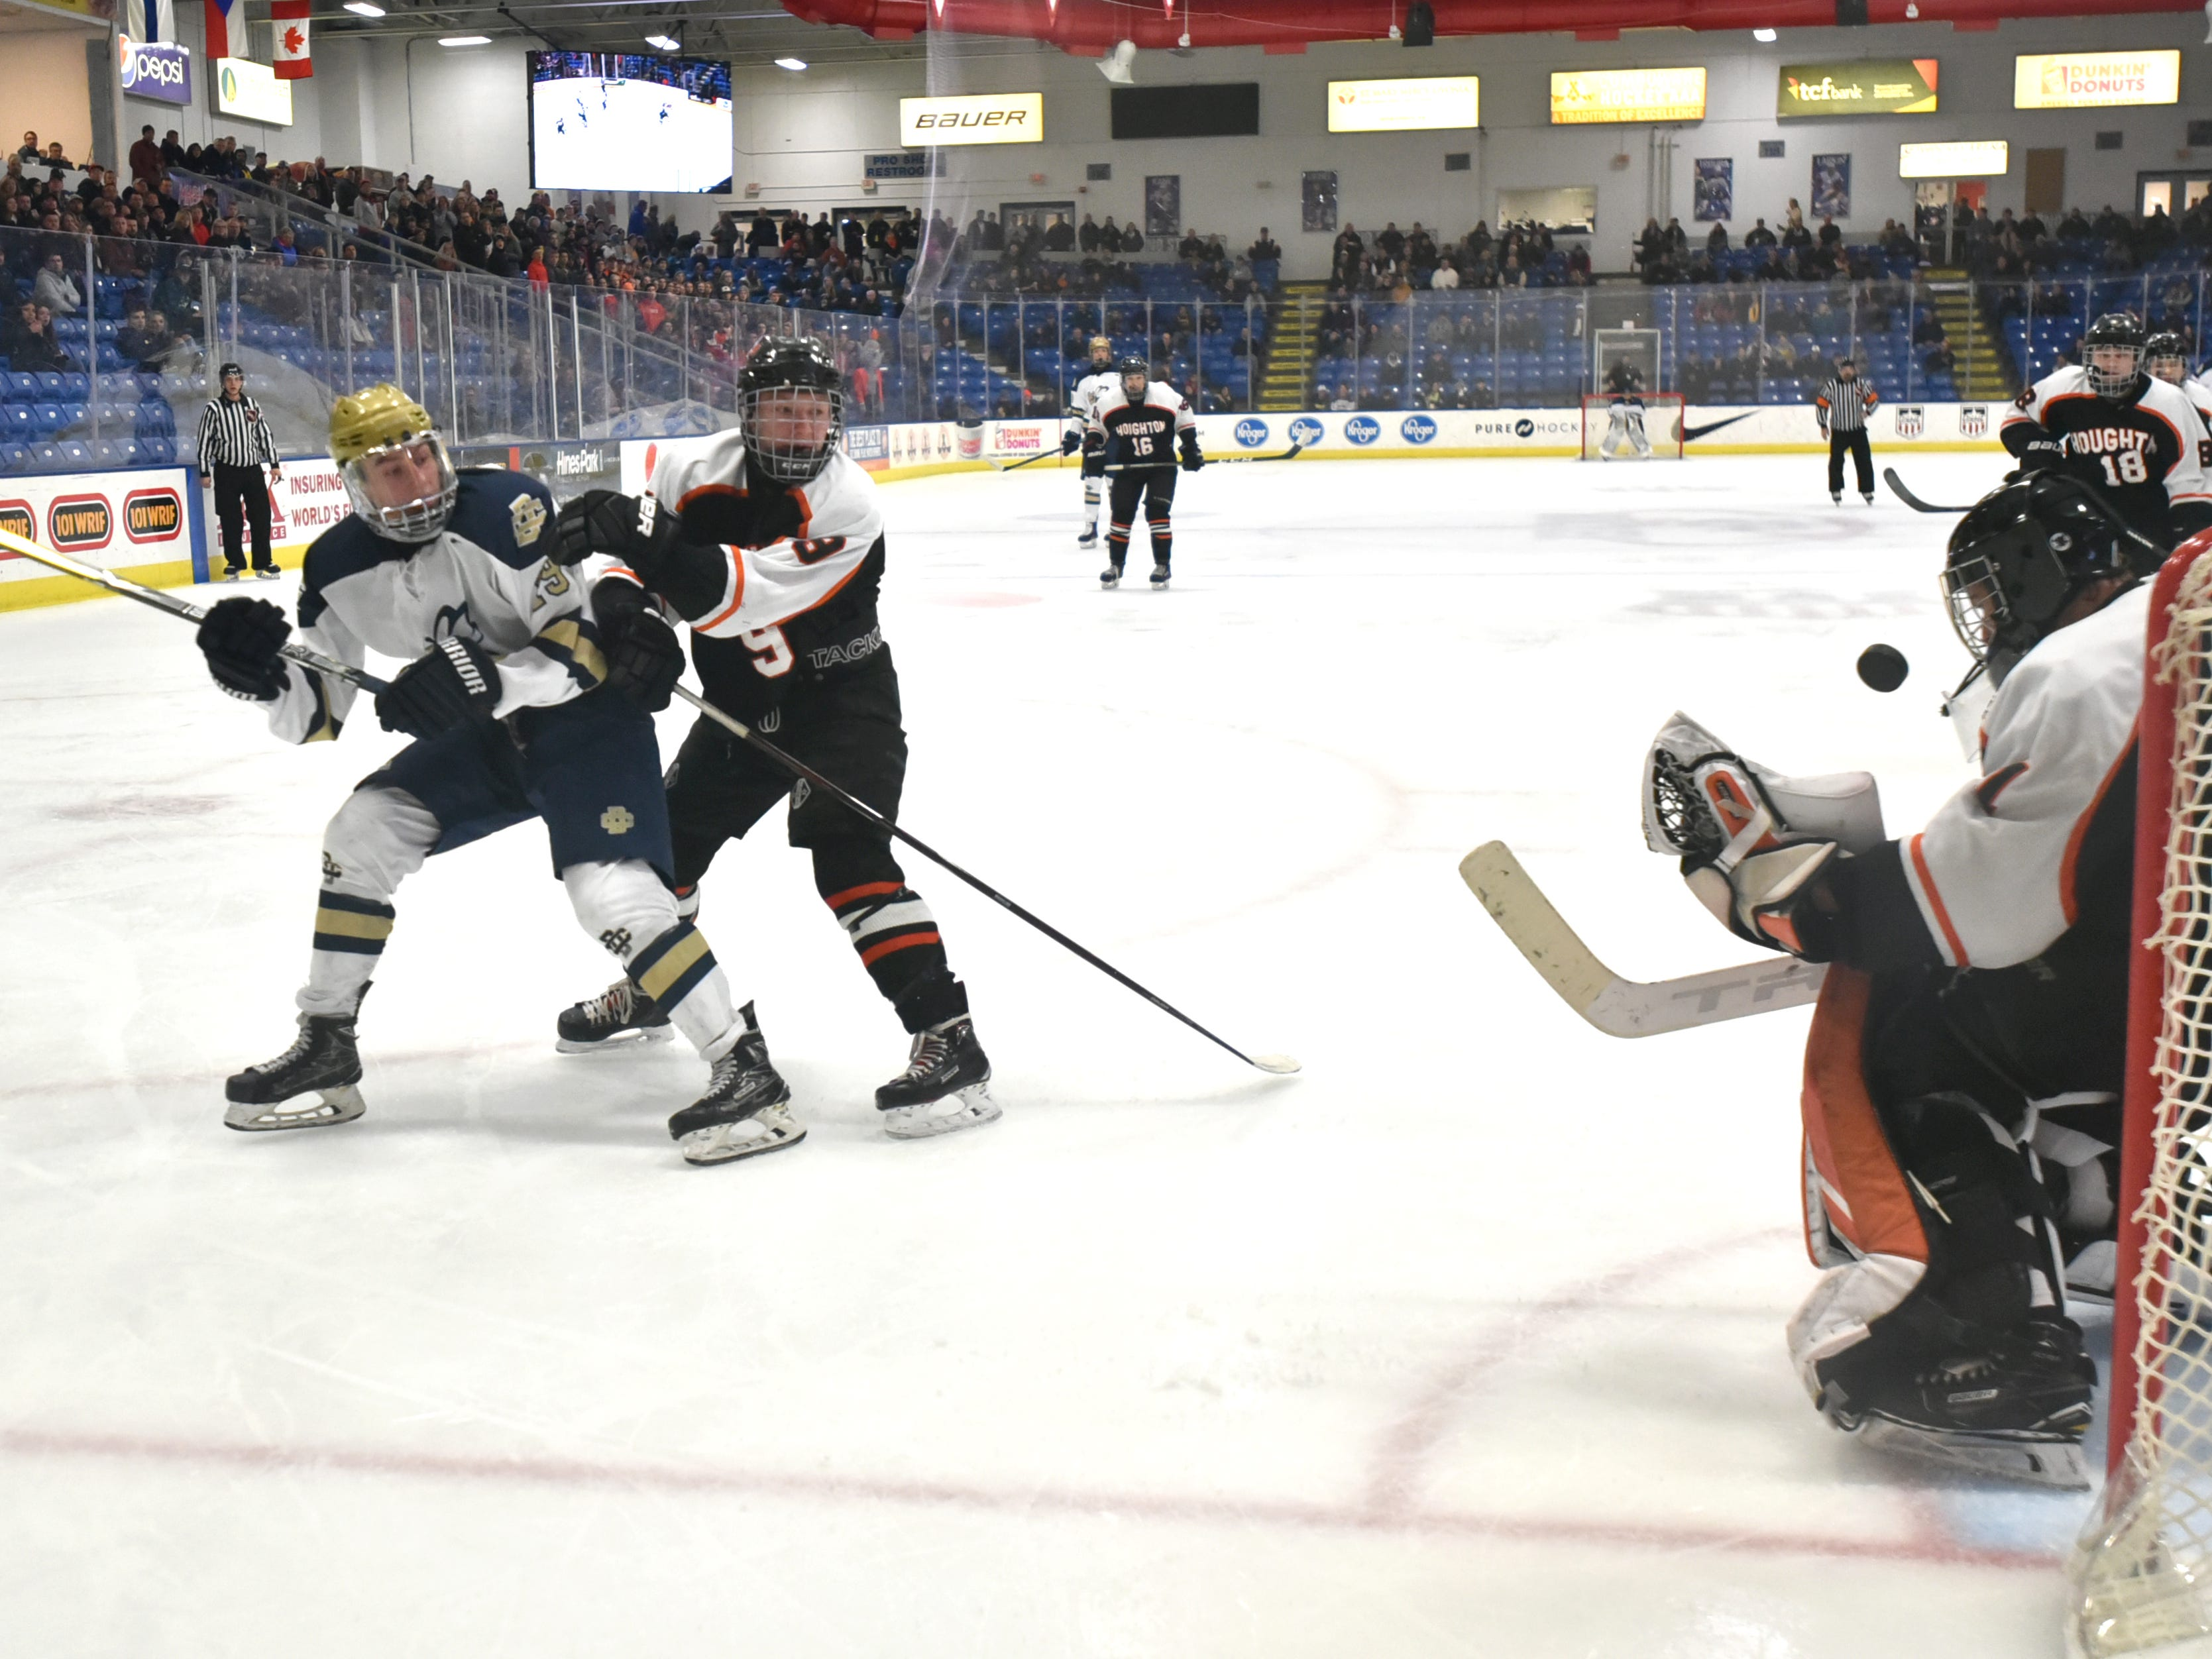 Country Day's Logan Gotinsky, left, sends a shot that's saved by Houghton goalie Jimmy Pietila during the first period.